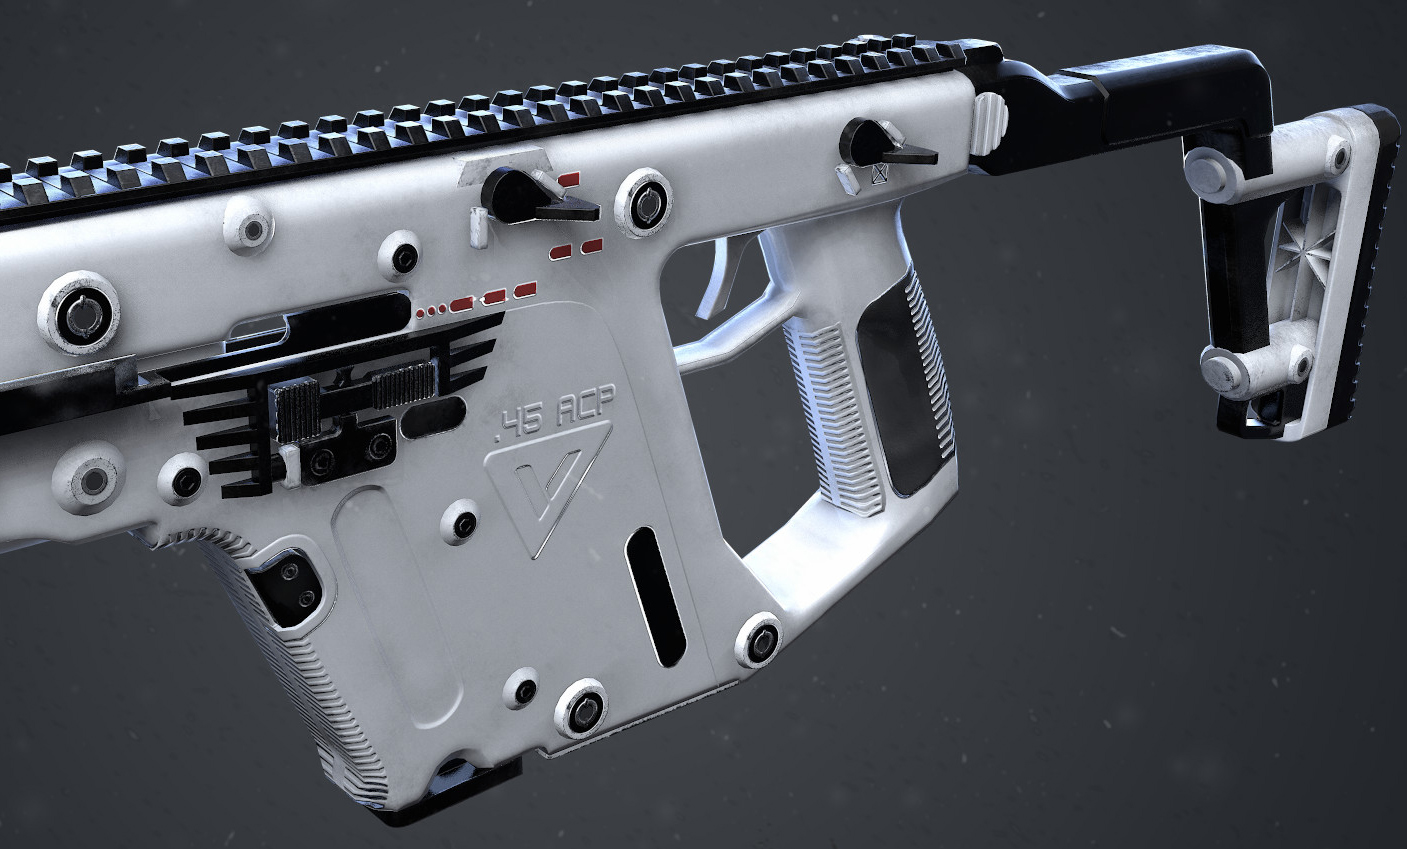 Kriss Vector 7,769 Tris  4K Textures (Albedo, Roughness, Metal, Normal,AO)  18 Hrs  Rendered in Marmoset Toolbag